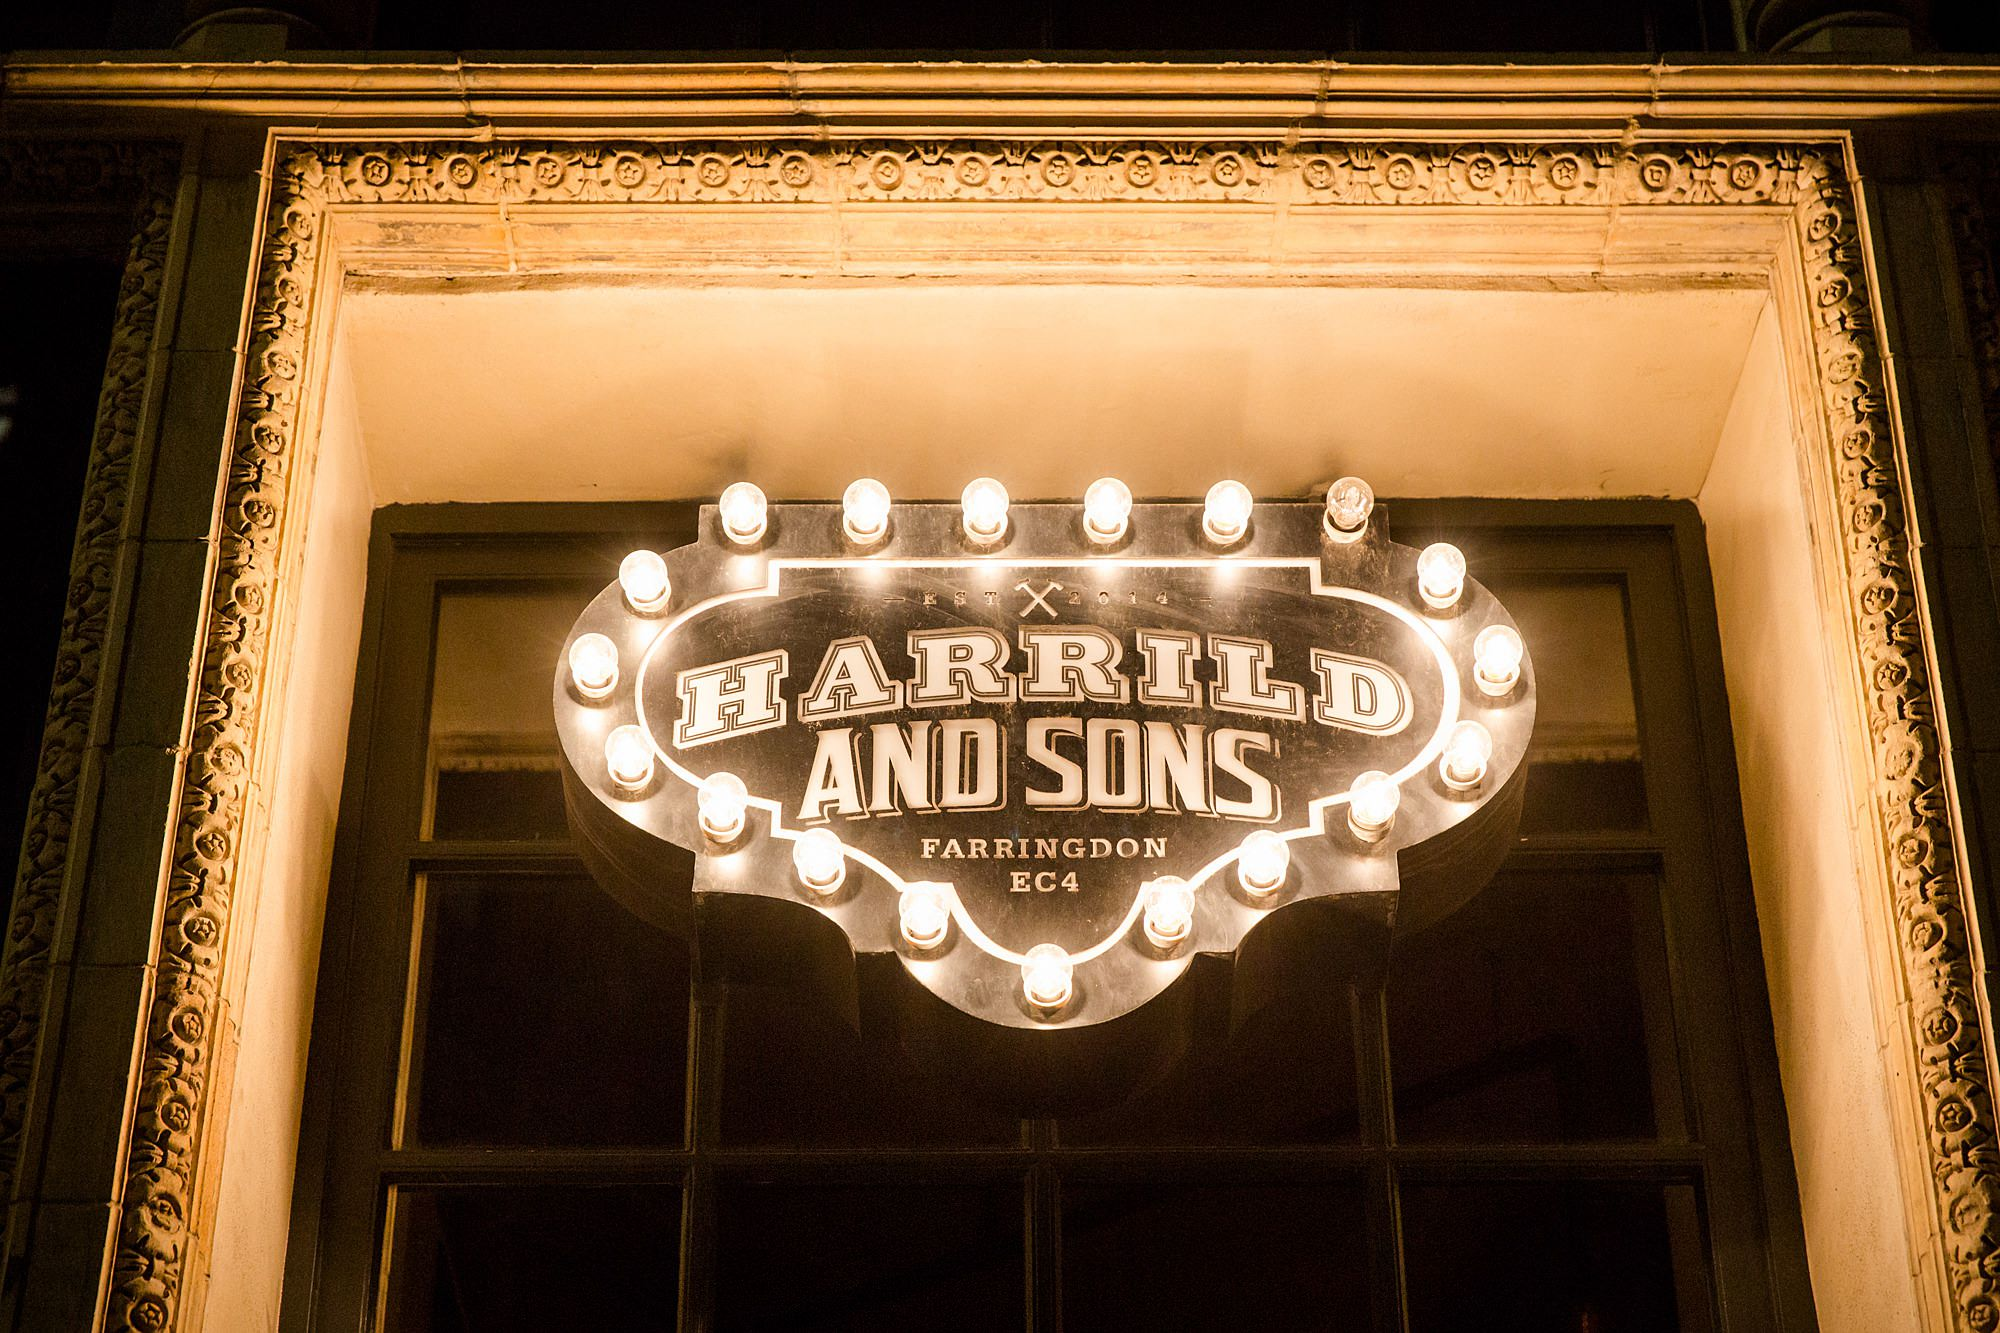 Harrild and sons illuminated bar sign